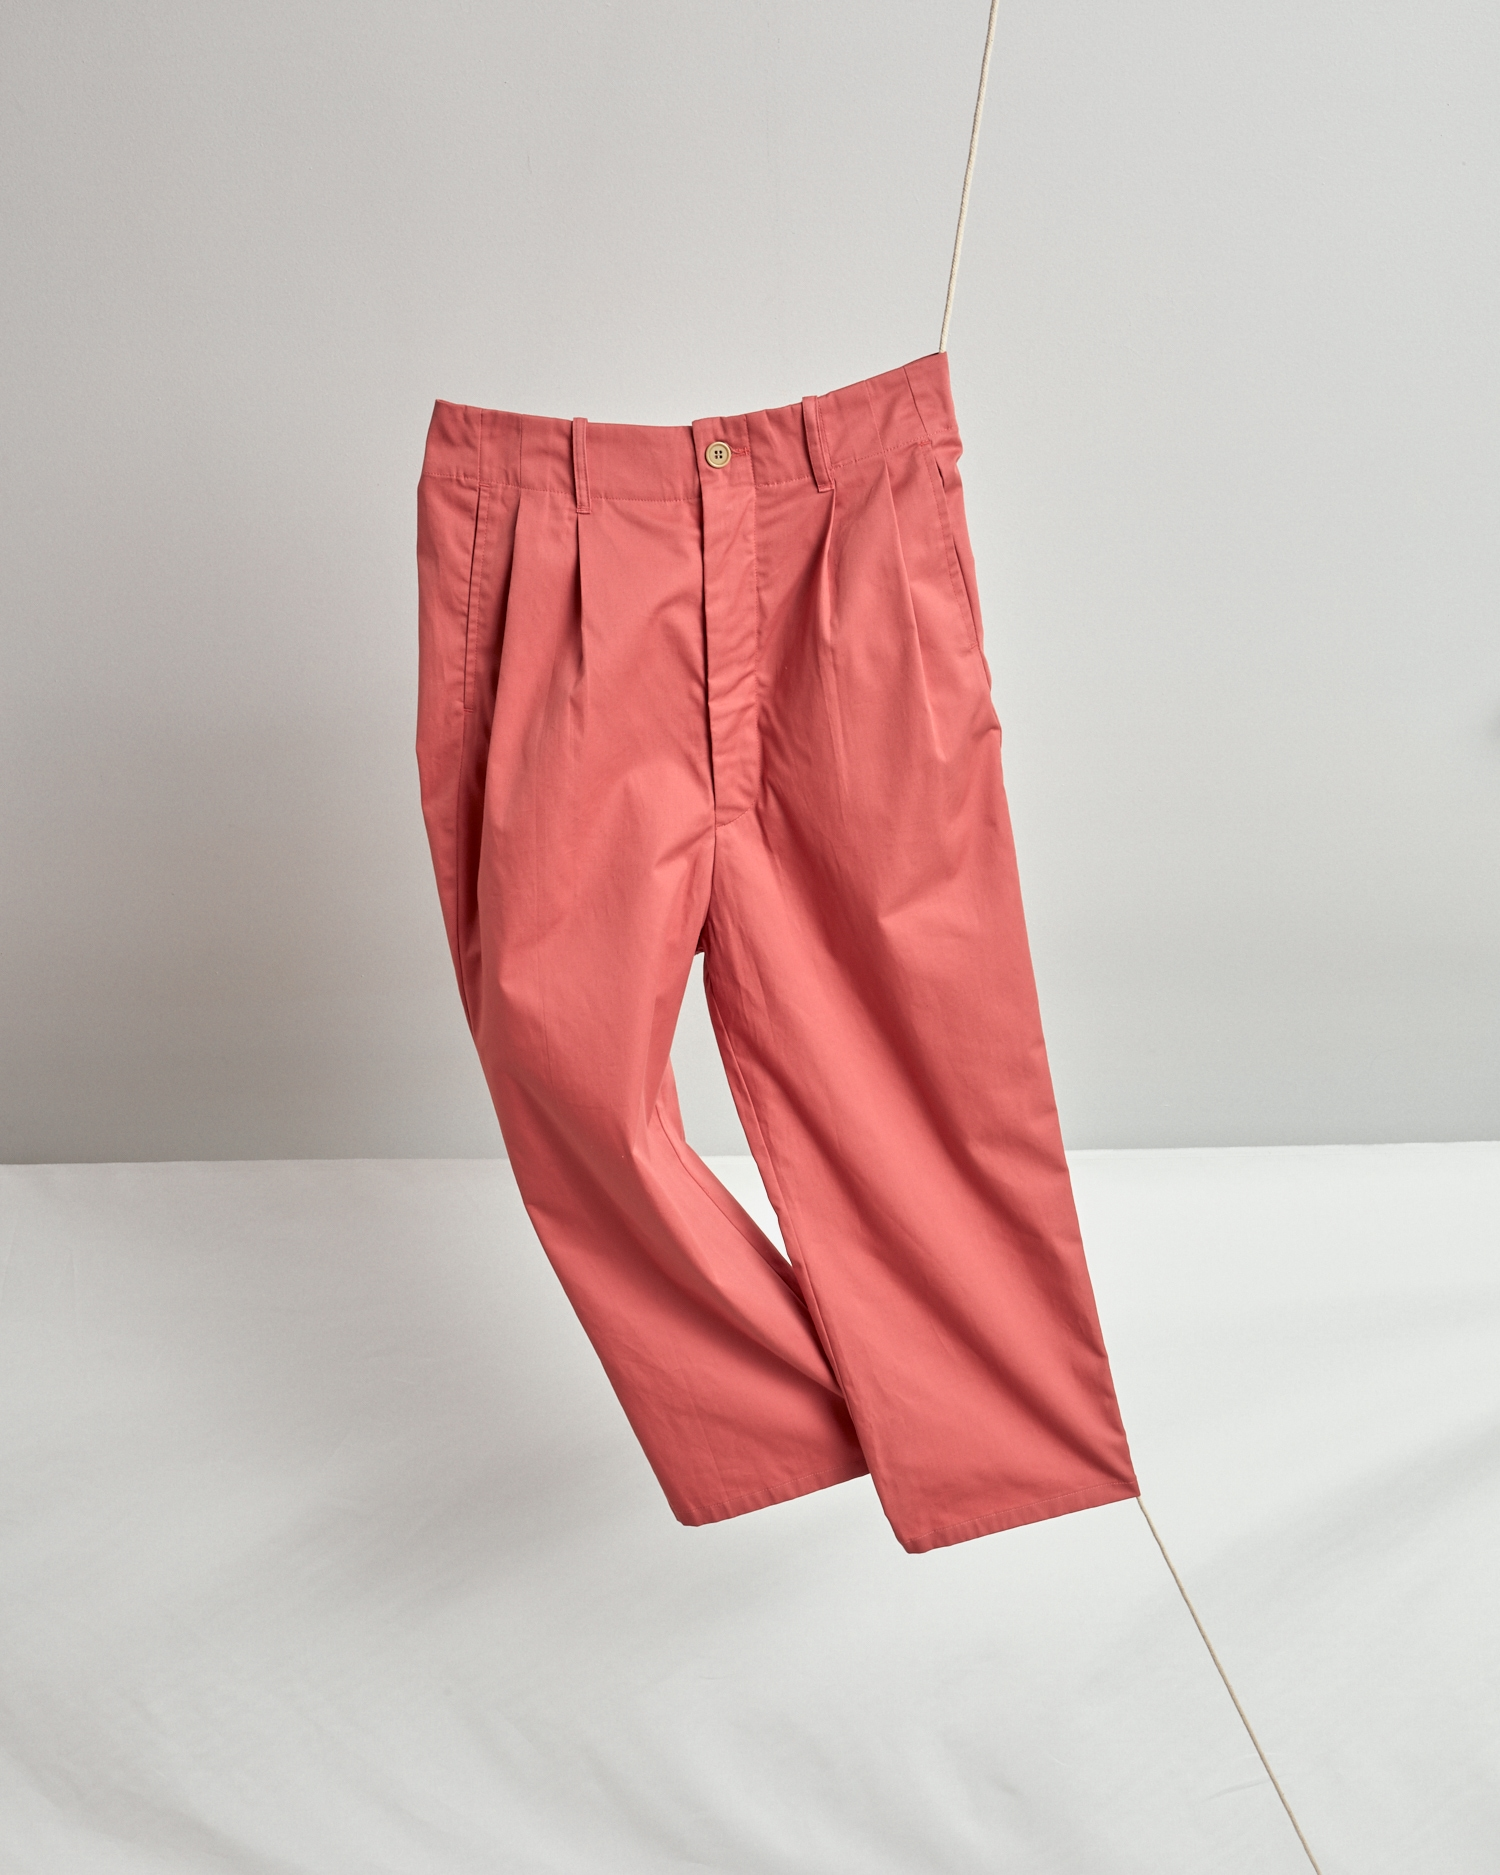 Shop Cropped, Wide-Leg Pant In Summer Weight Coral By One DNA